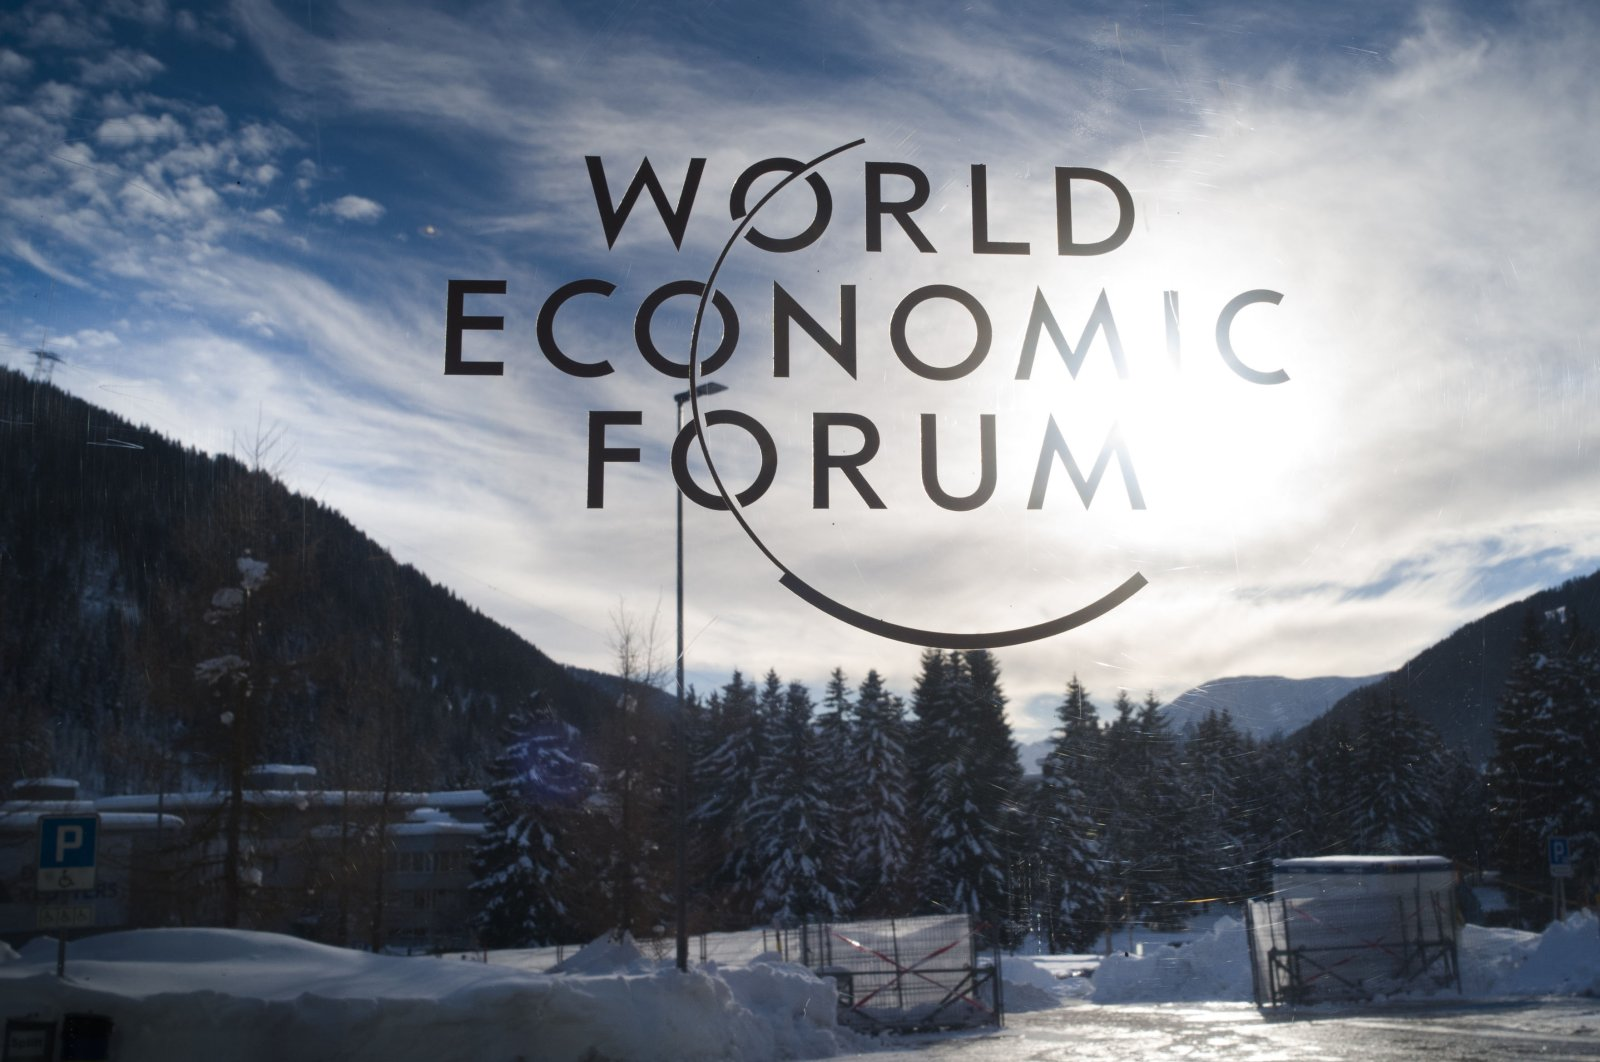 The sign of the World Economic Forum (WEF) is displayed at an entrance door at the congress center on the eve of the meeting in Davos, Switzerland, Jan. 20, 2019. (AP Photo)